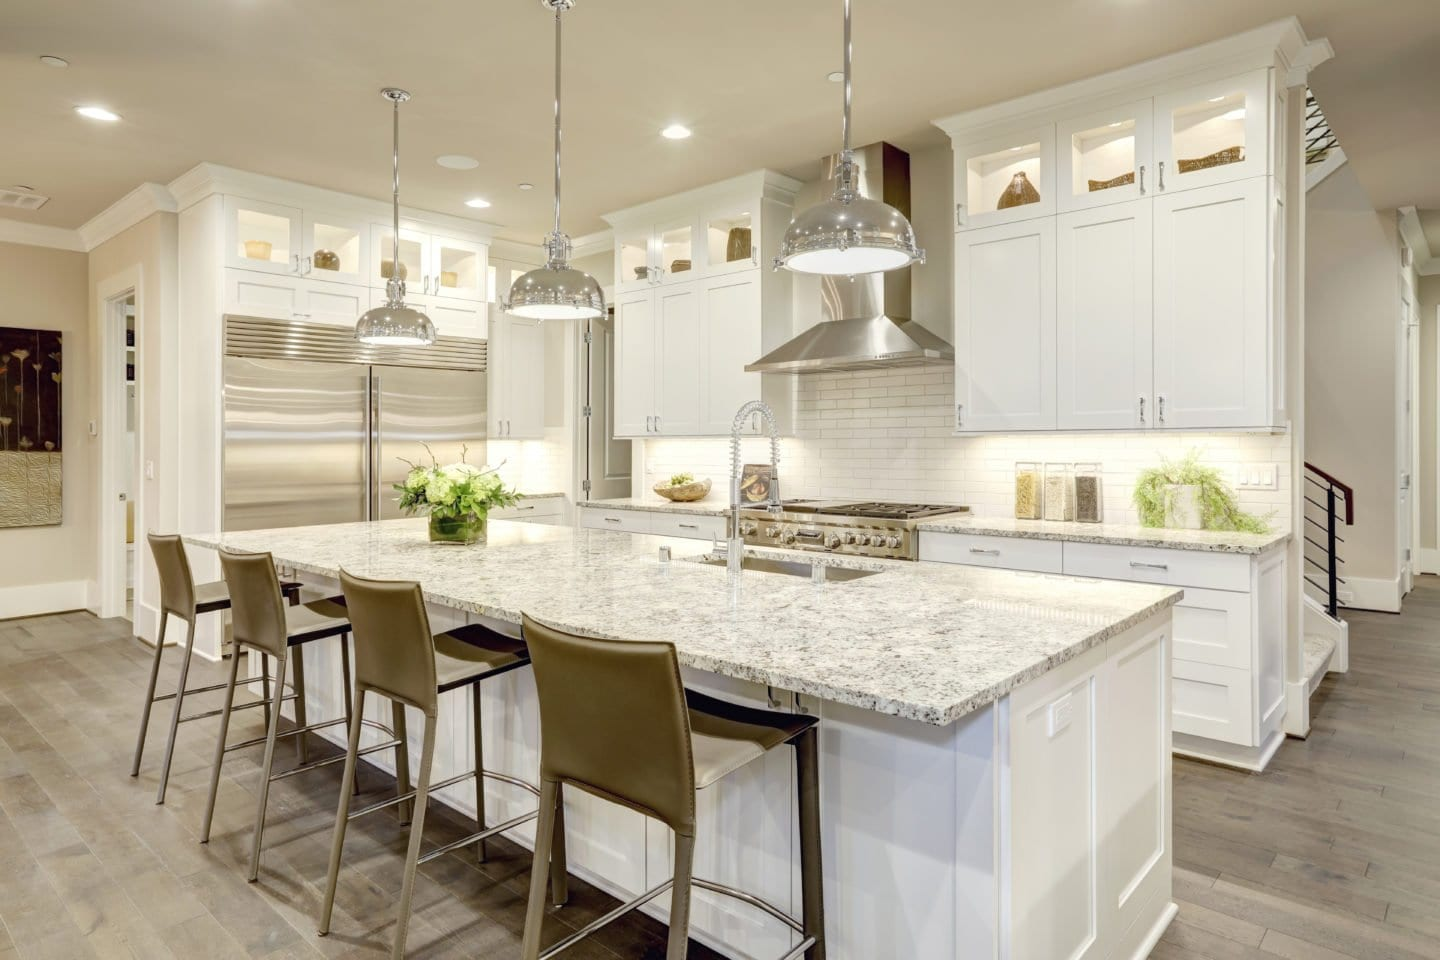 HACKS TO KEEP YOUR KITCHEN CLEAN